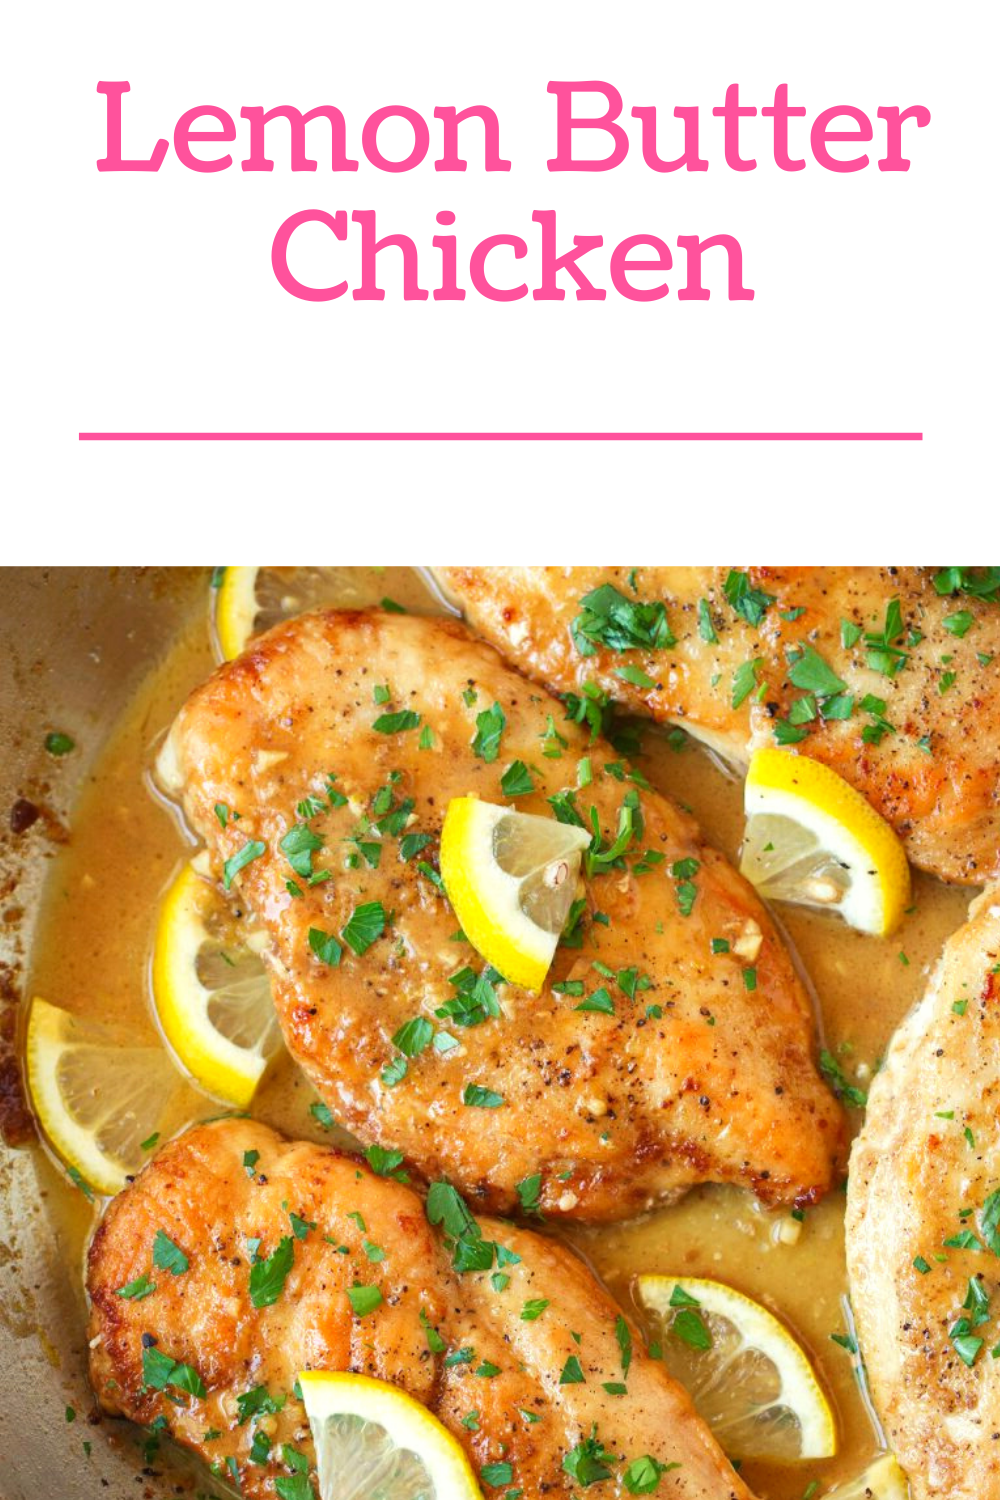 Lemon Butter Chicken